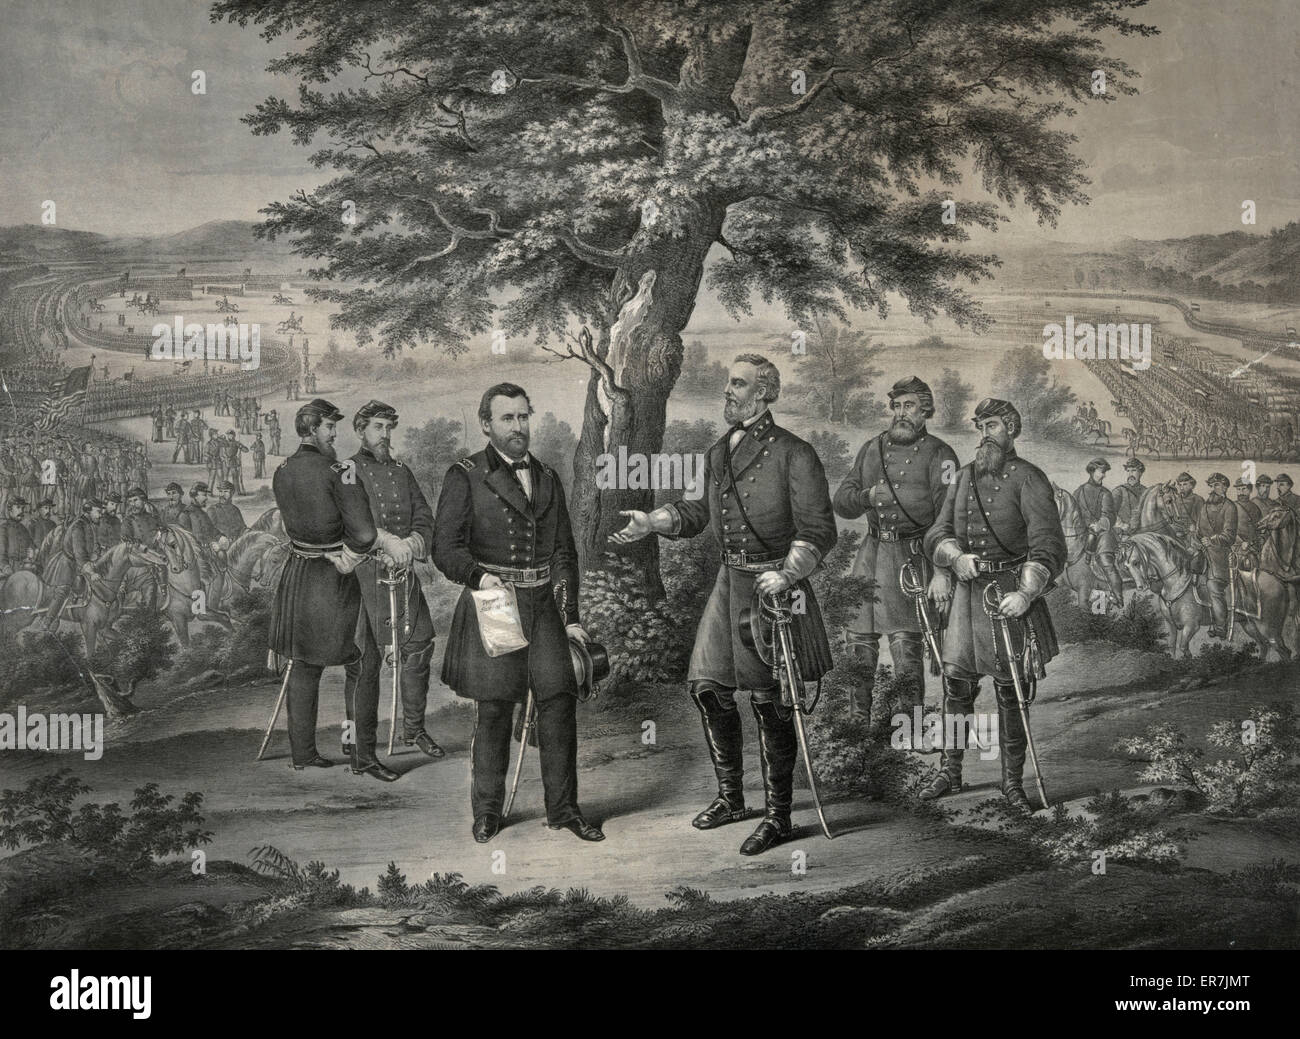 The surrender of General Lee and his entire Army to Lieut. General Grant April 9th 1865. Date c1865. - Stock Image